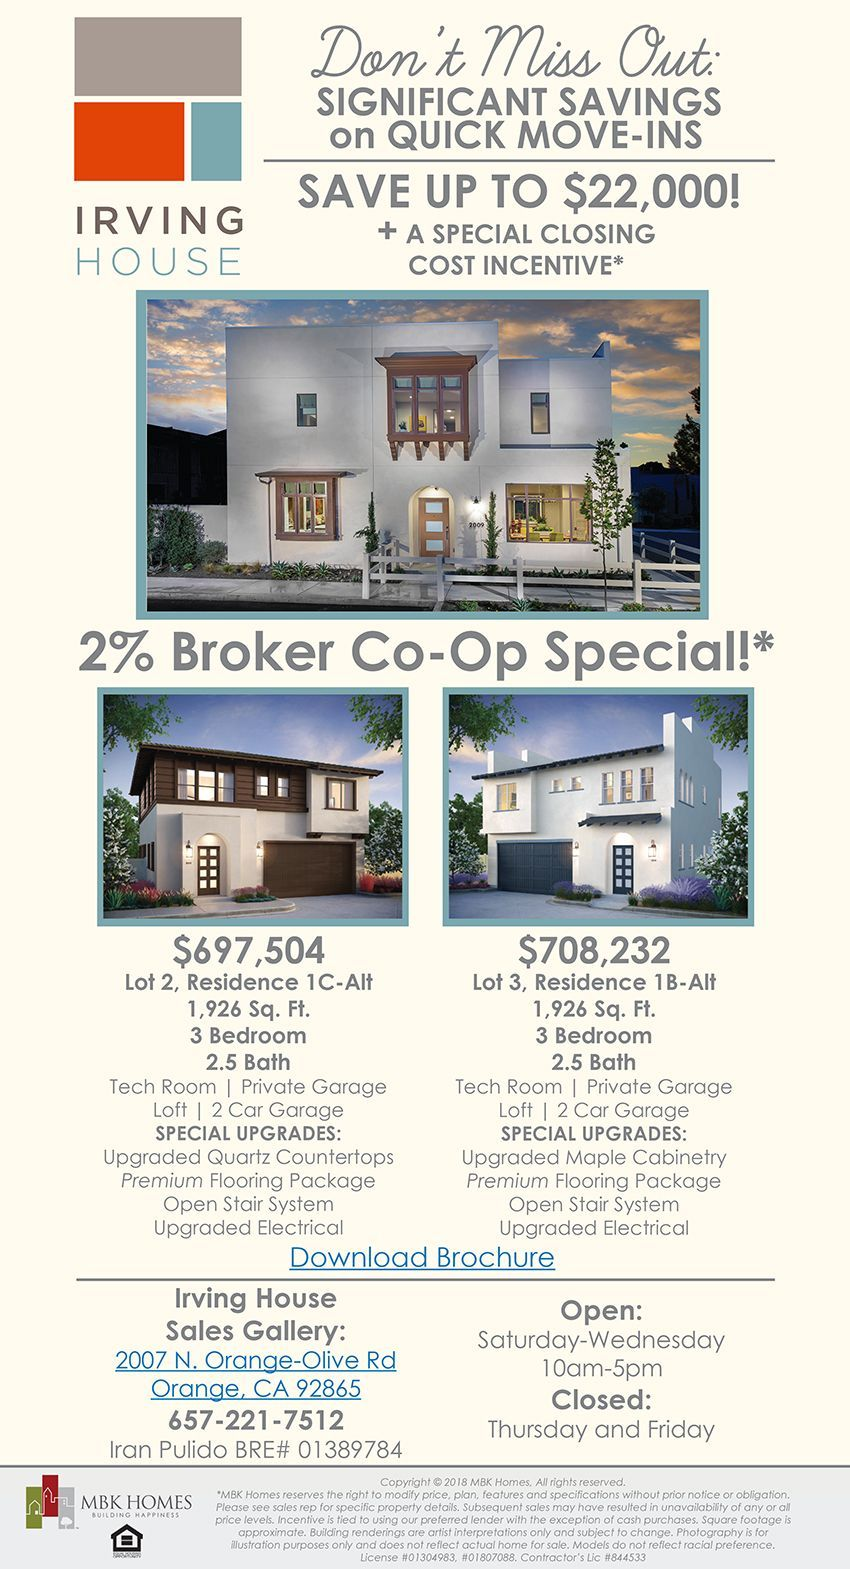 New homes for sale in orange california broker coops and quick